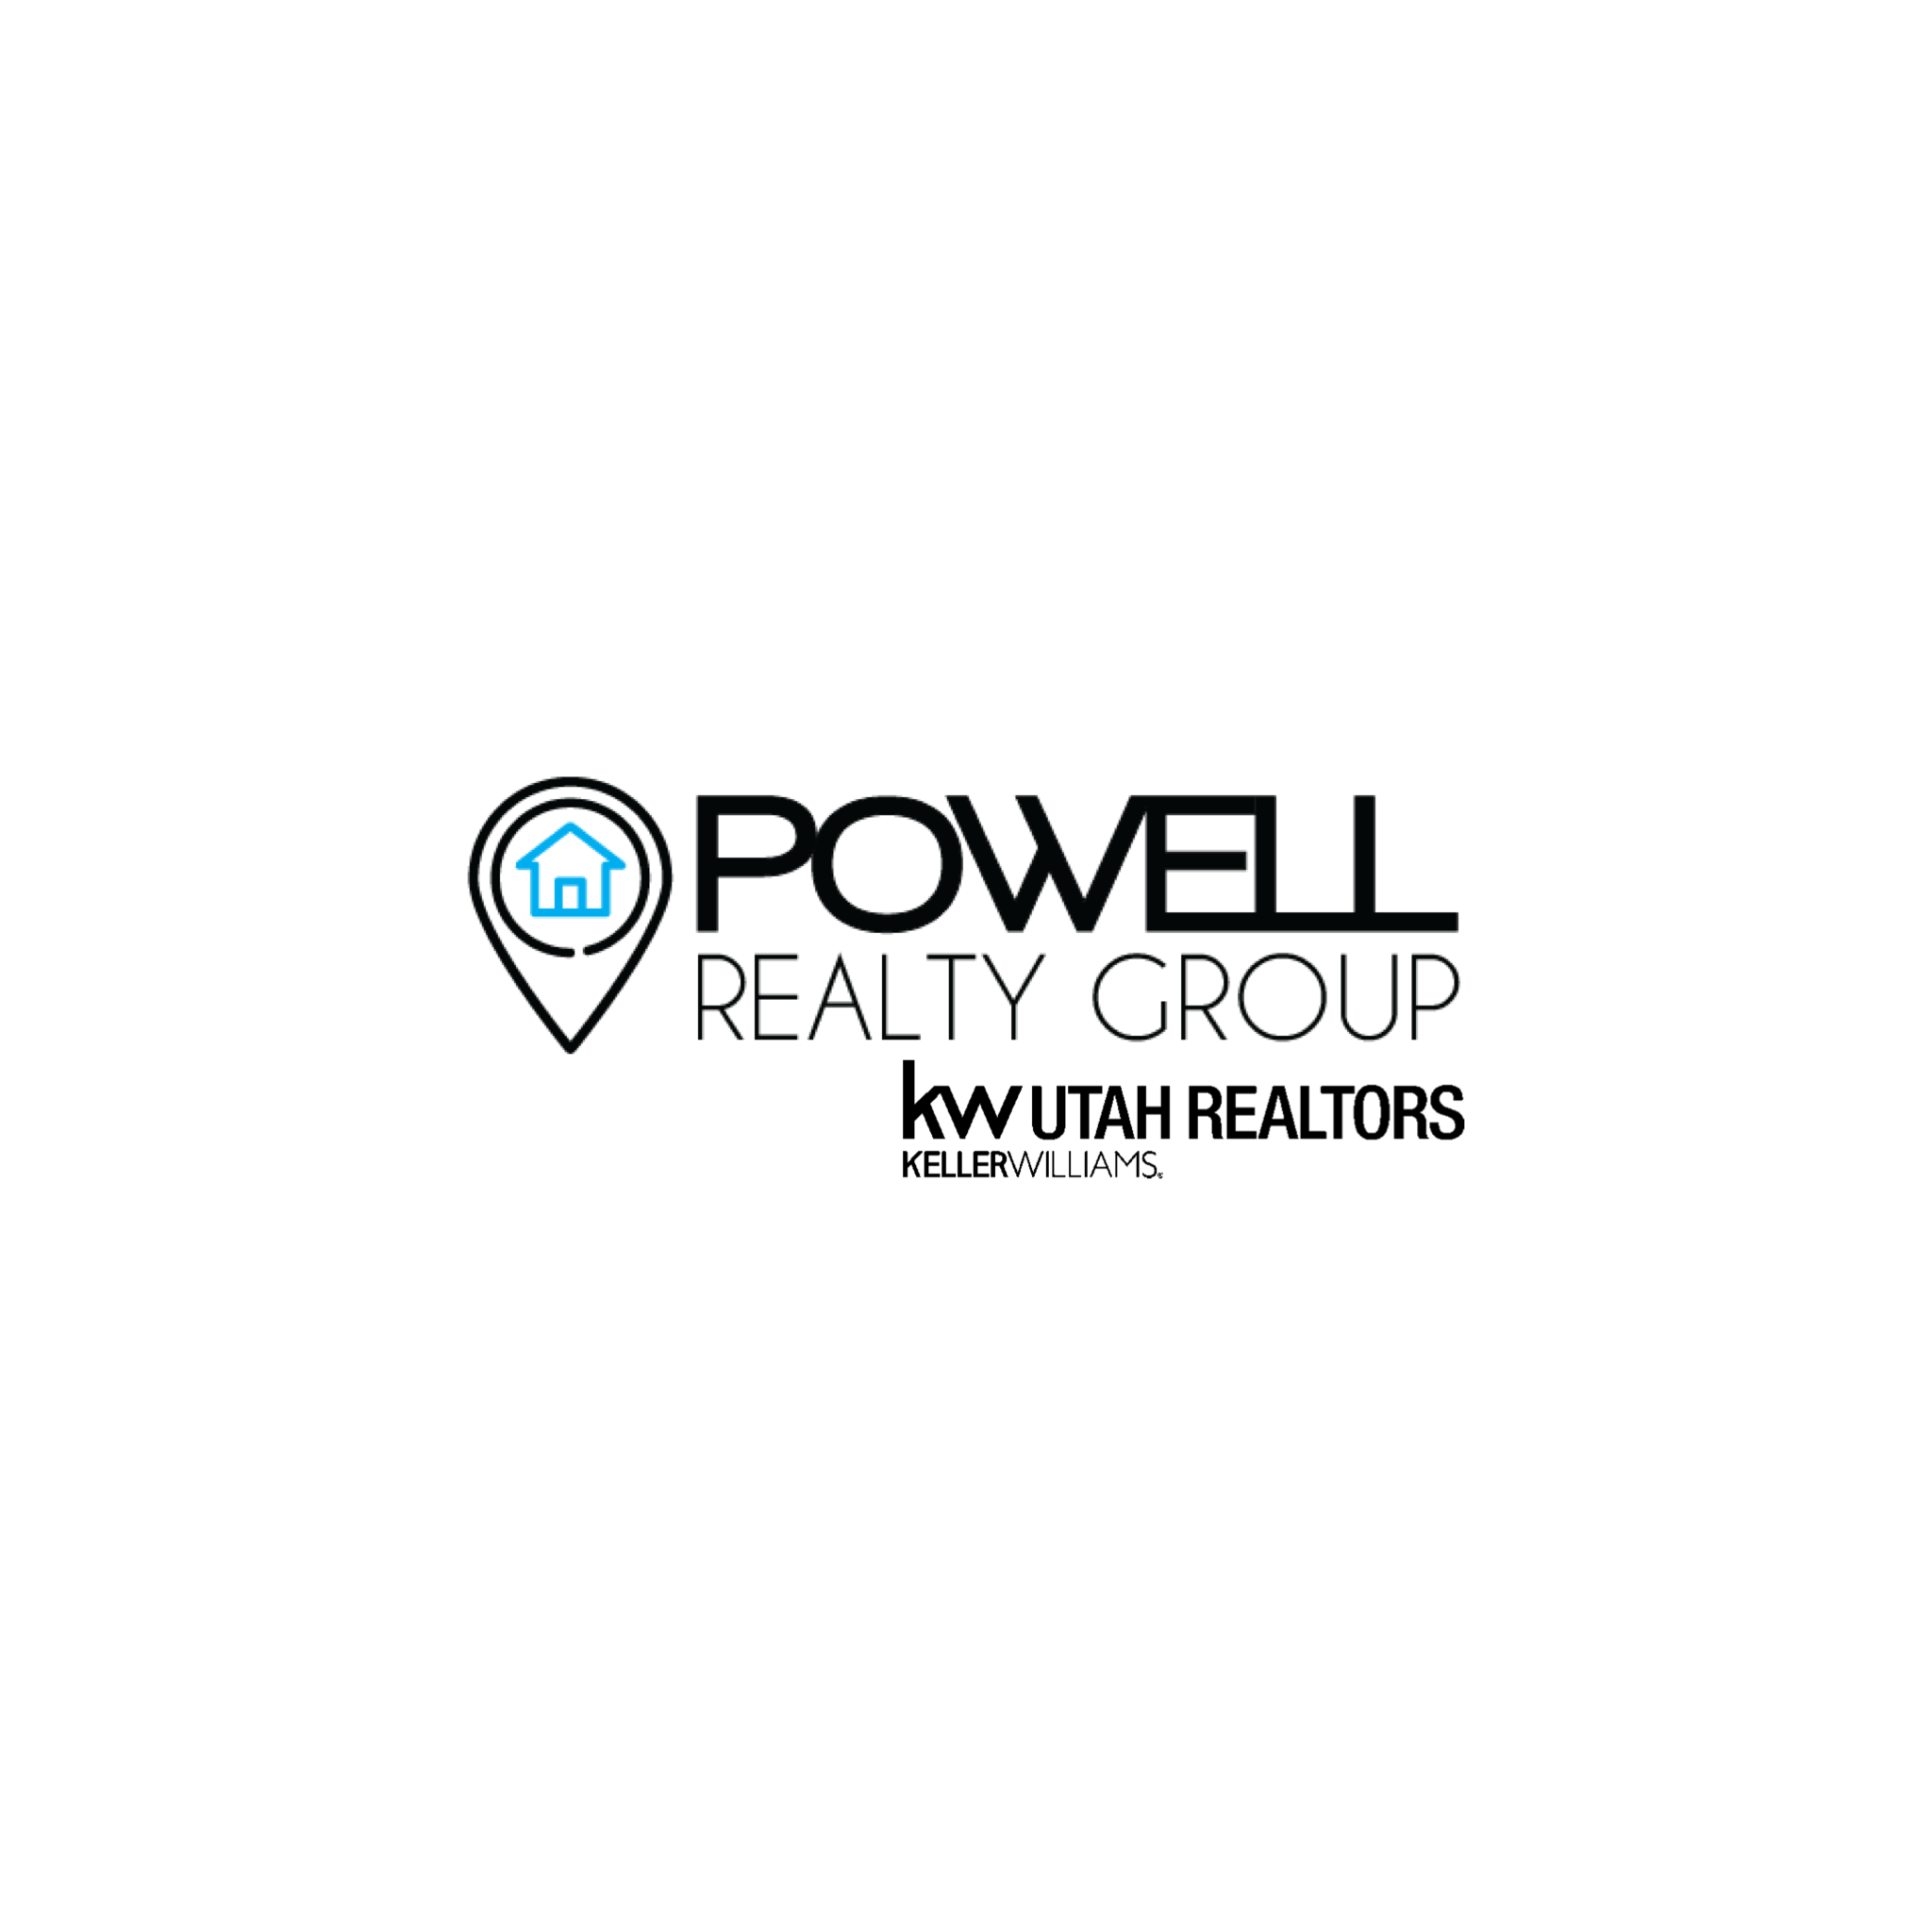 Powell Realty Group